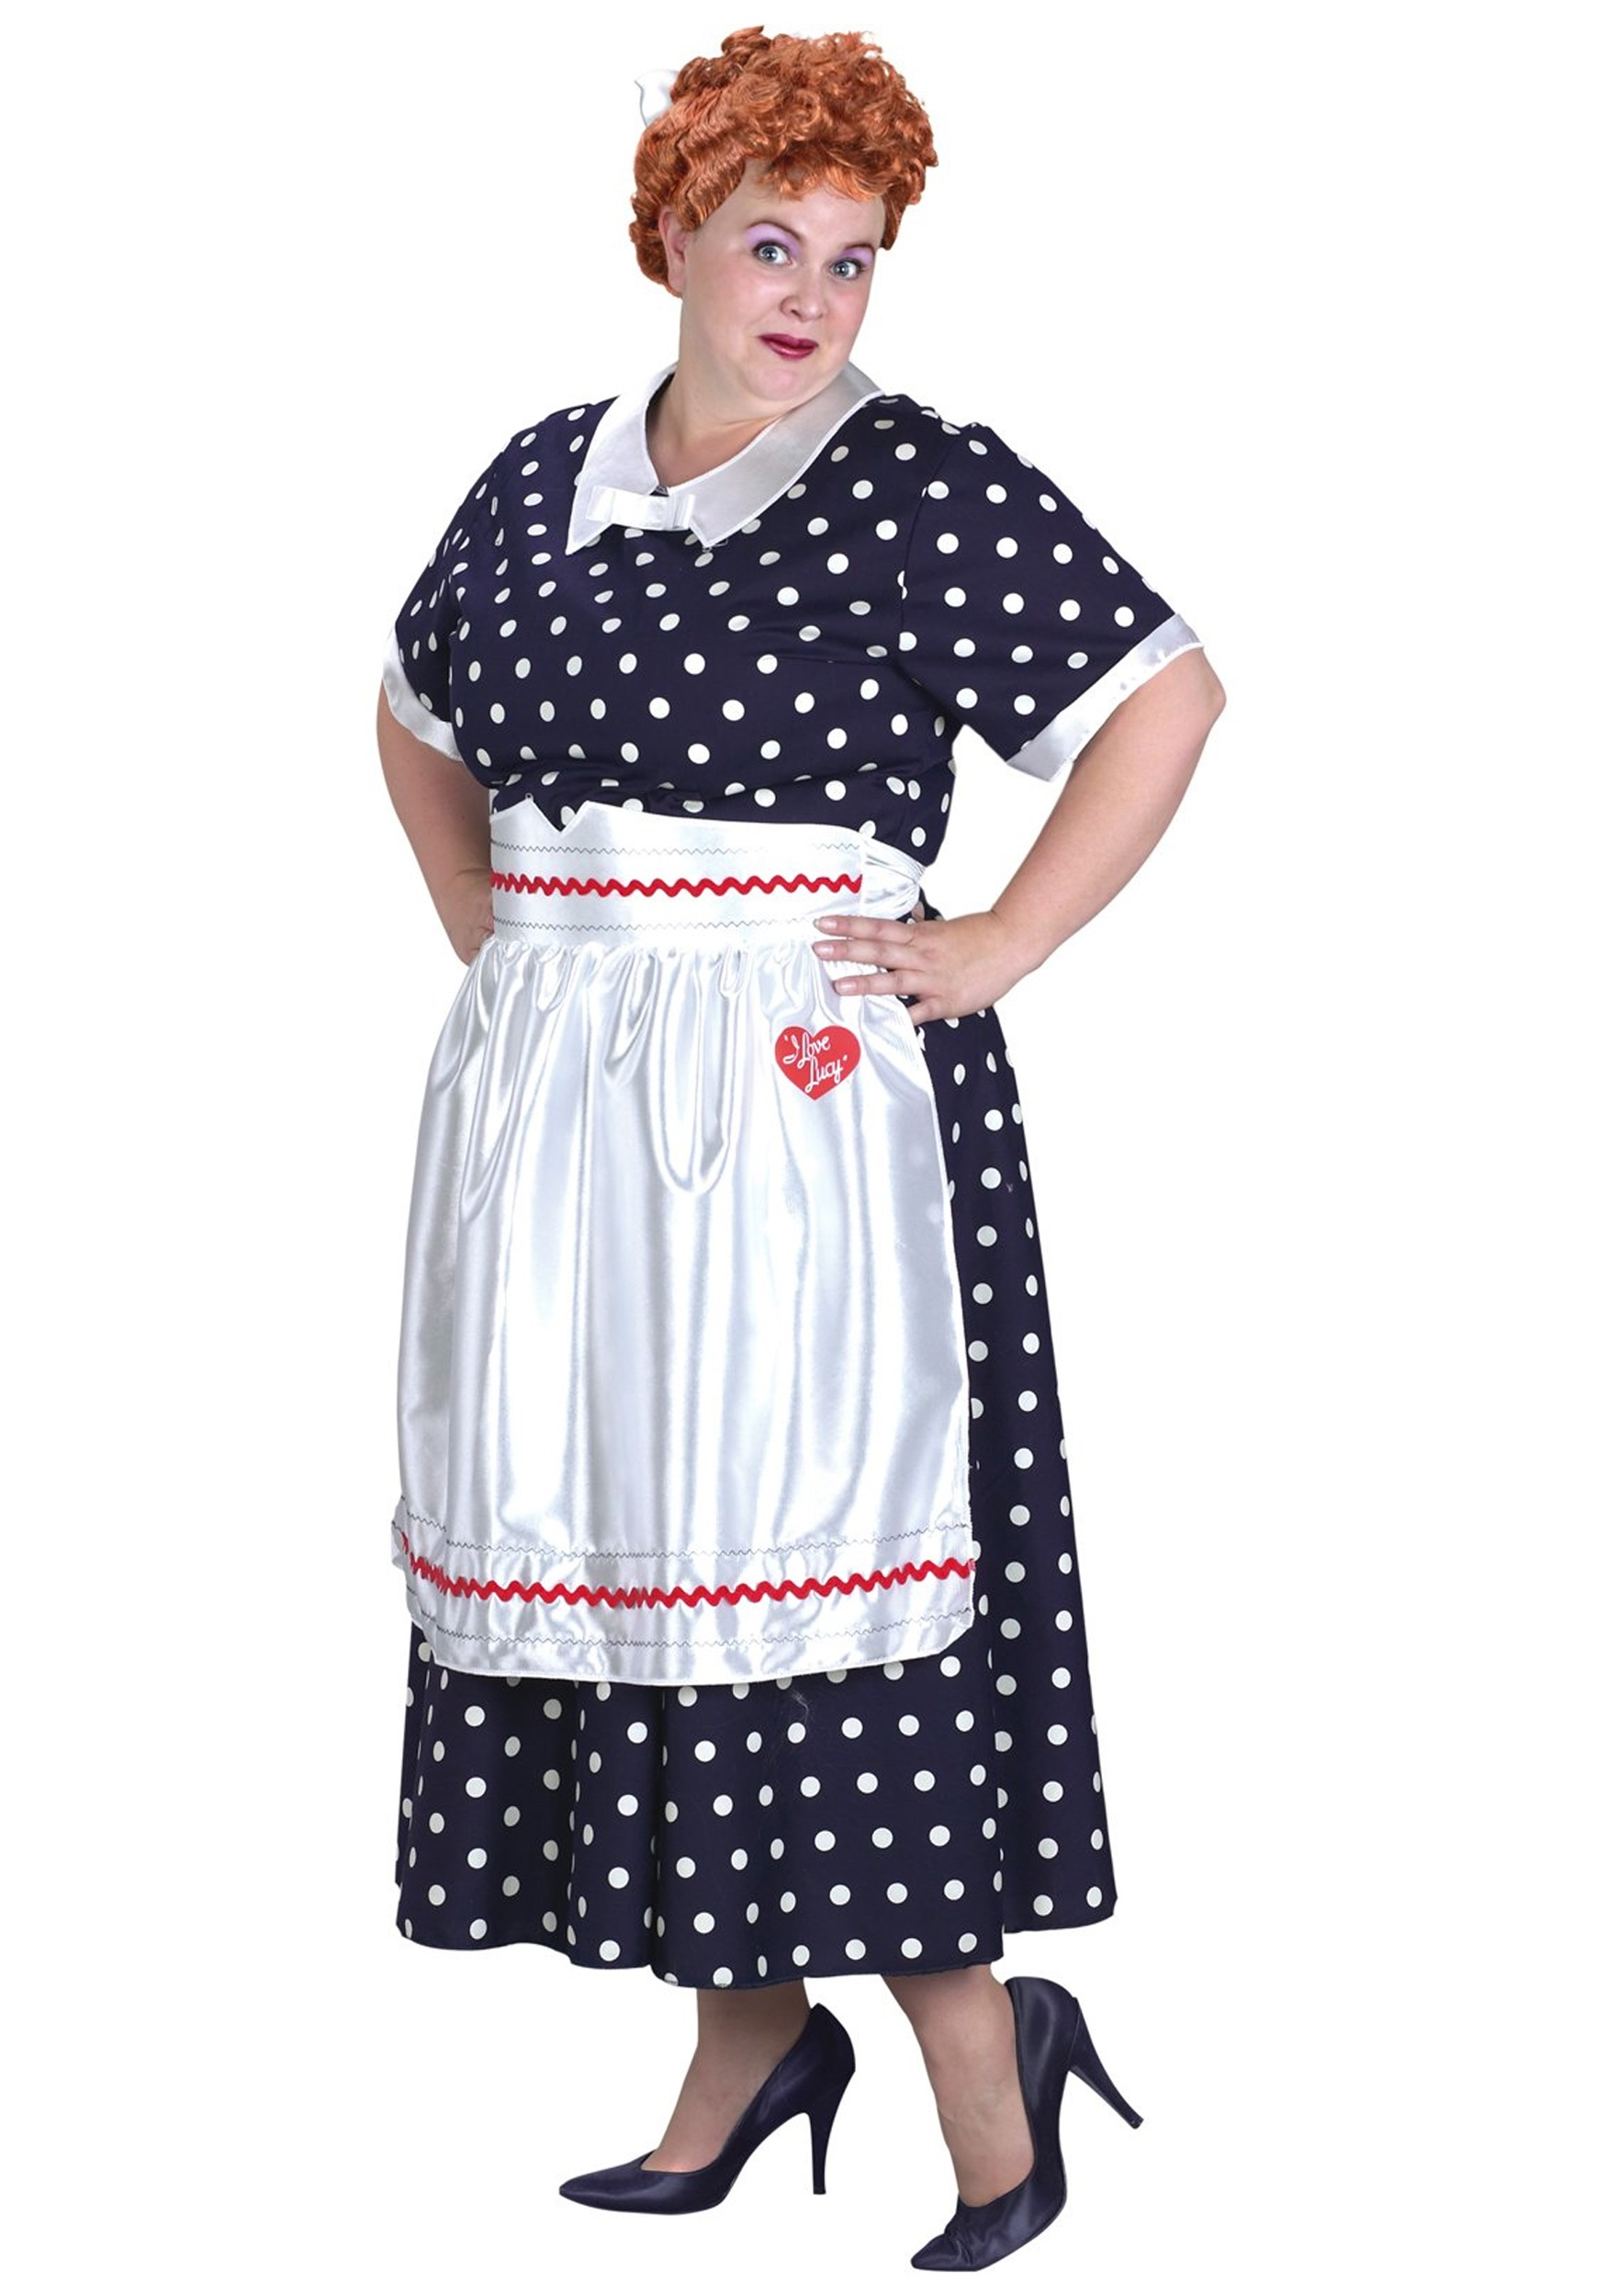 plus size i love lucy dress - adult halloween costumes from the 1950s